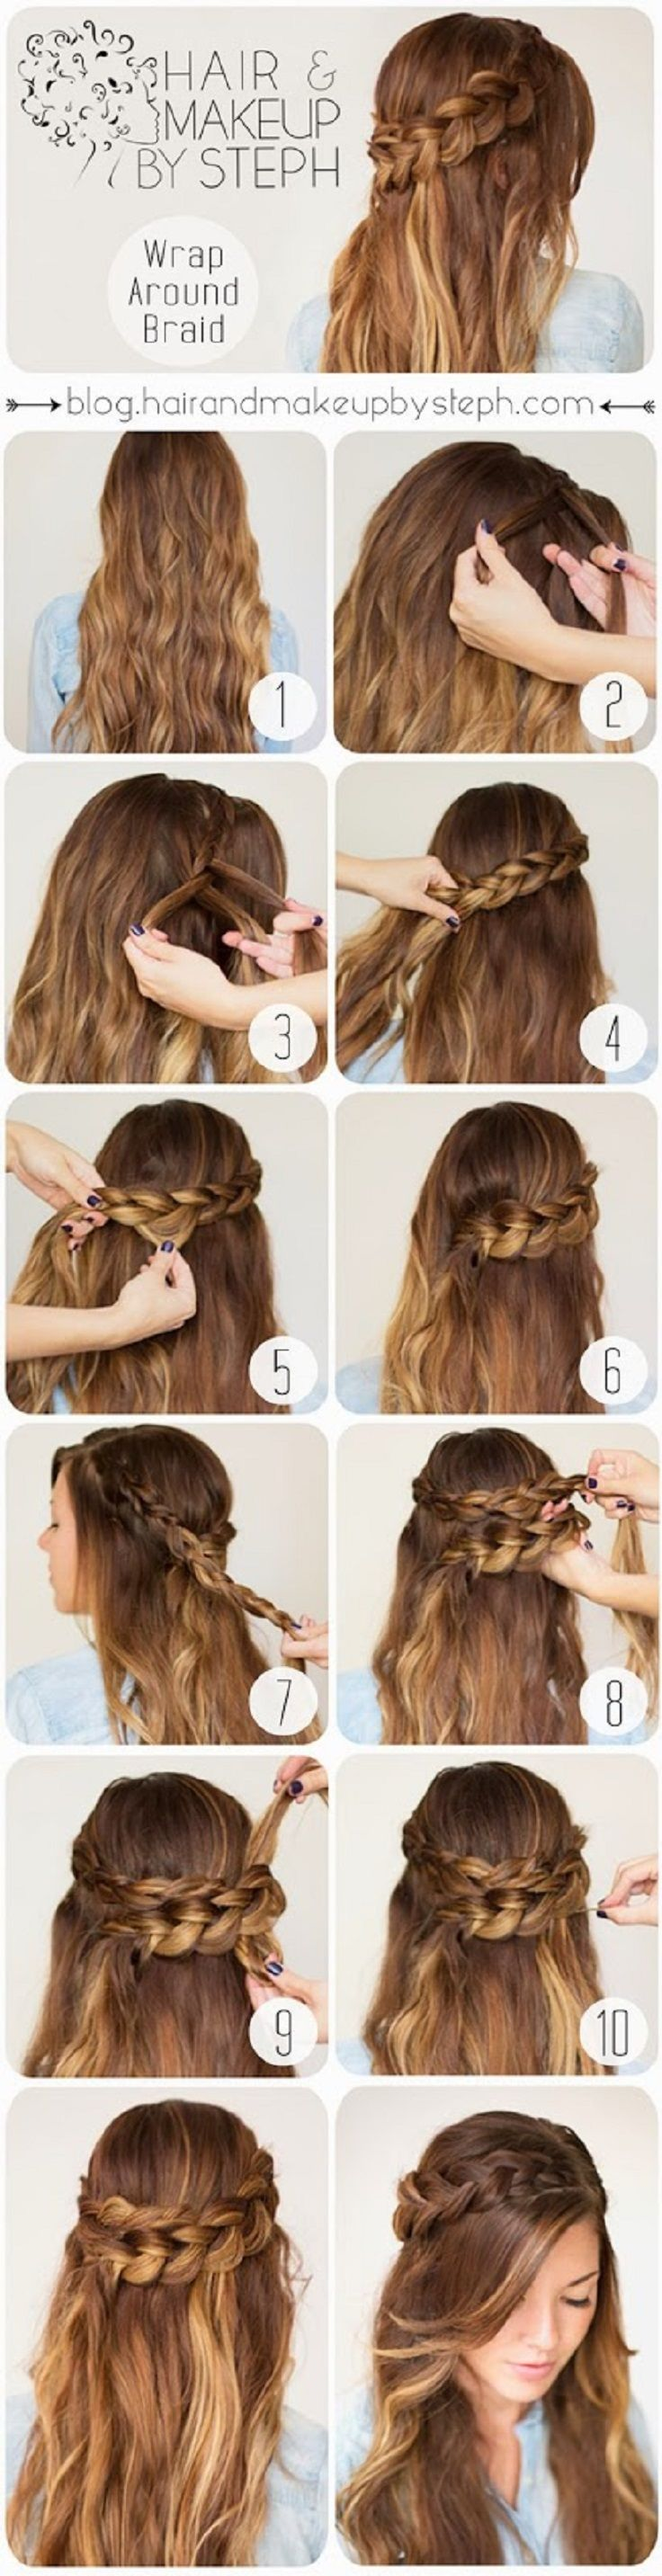 7 Romantic Hairstyle Tutorials